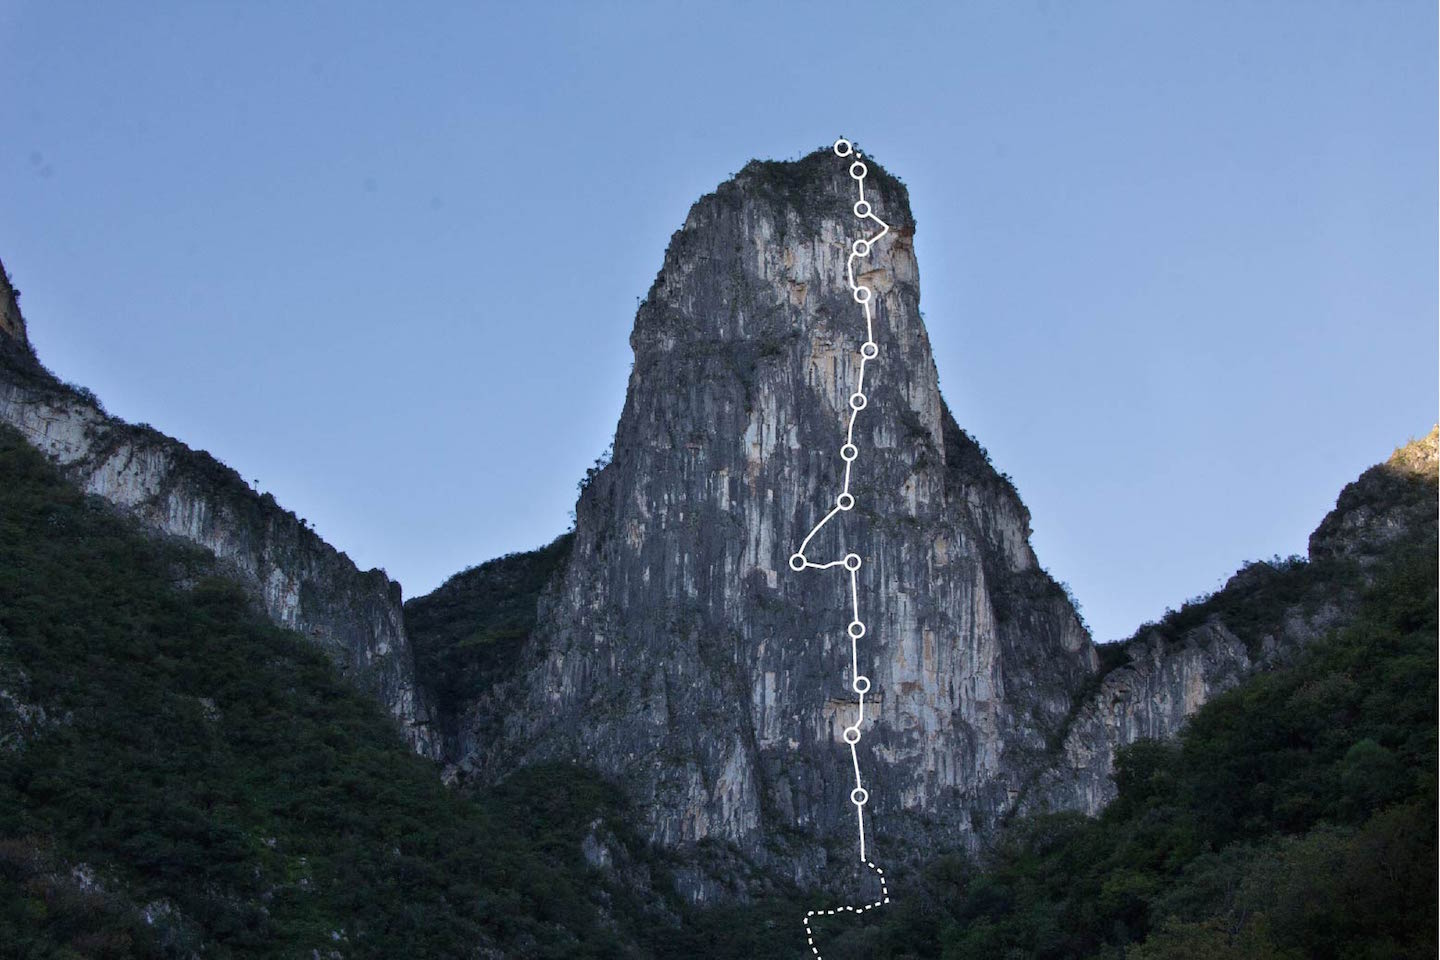 The north face of El Diente, showing the route El Son del Viento (420m, 5.12d A0), with the belay areas marked.